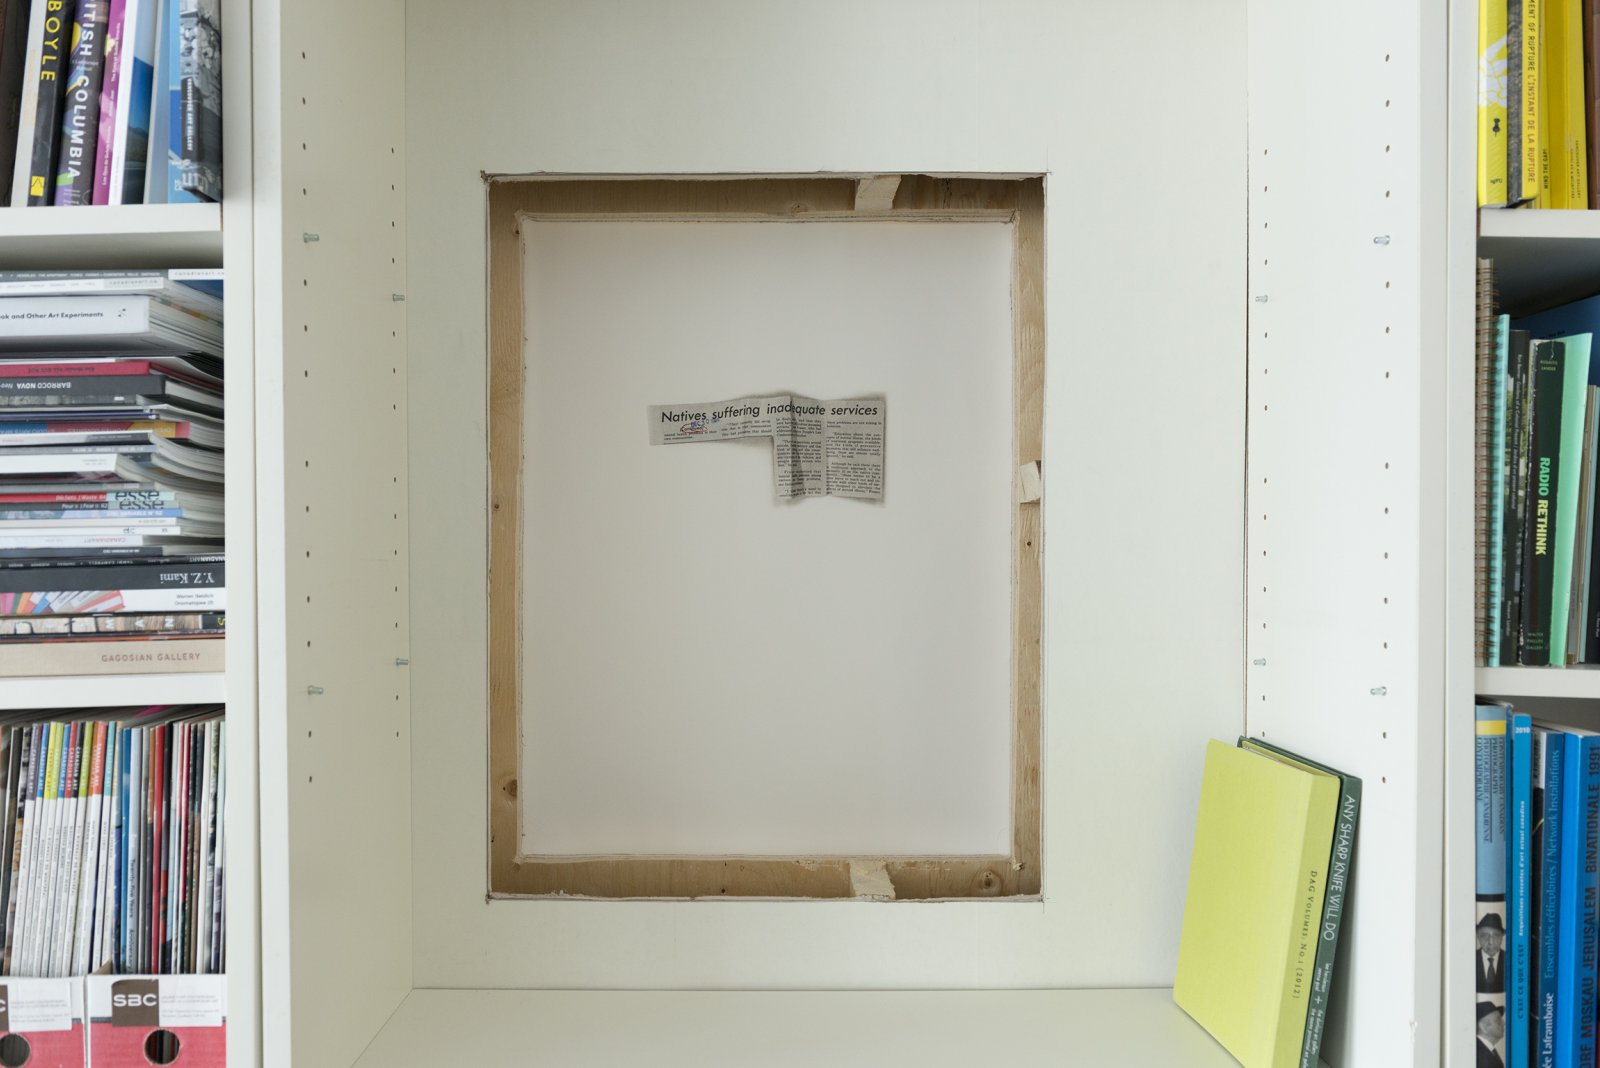 Brian Jungen,Natives Suffering, 2017,six plate photo etching on revere paper, double sided, 28 x 22 in. (72 x 56 cm). Installation view,Wood Land School: Kahatènhston tsi na'tetiátere ne Iotohrkó:wa tánon Iotohrha, Drawing a Line from Januaryto December, Wood Land School, Montreal, 2017